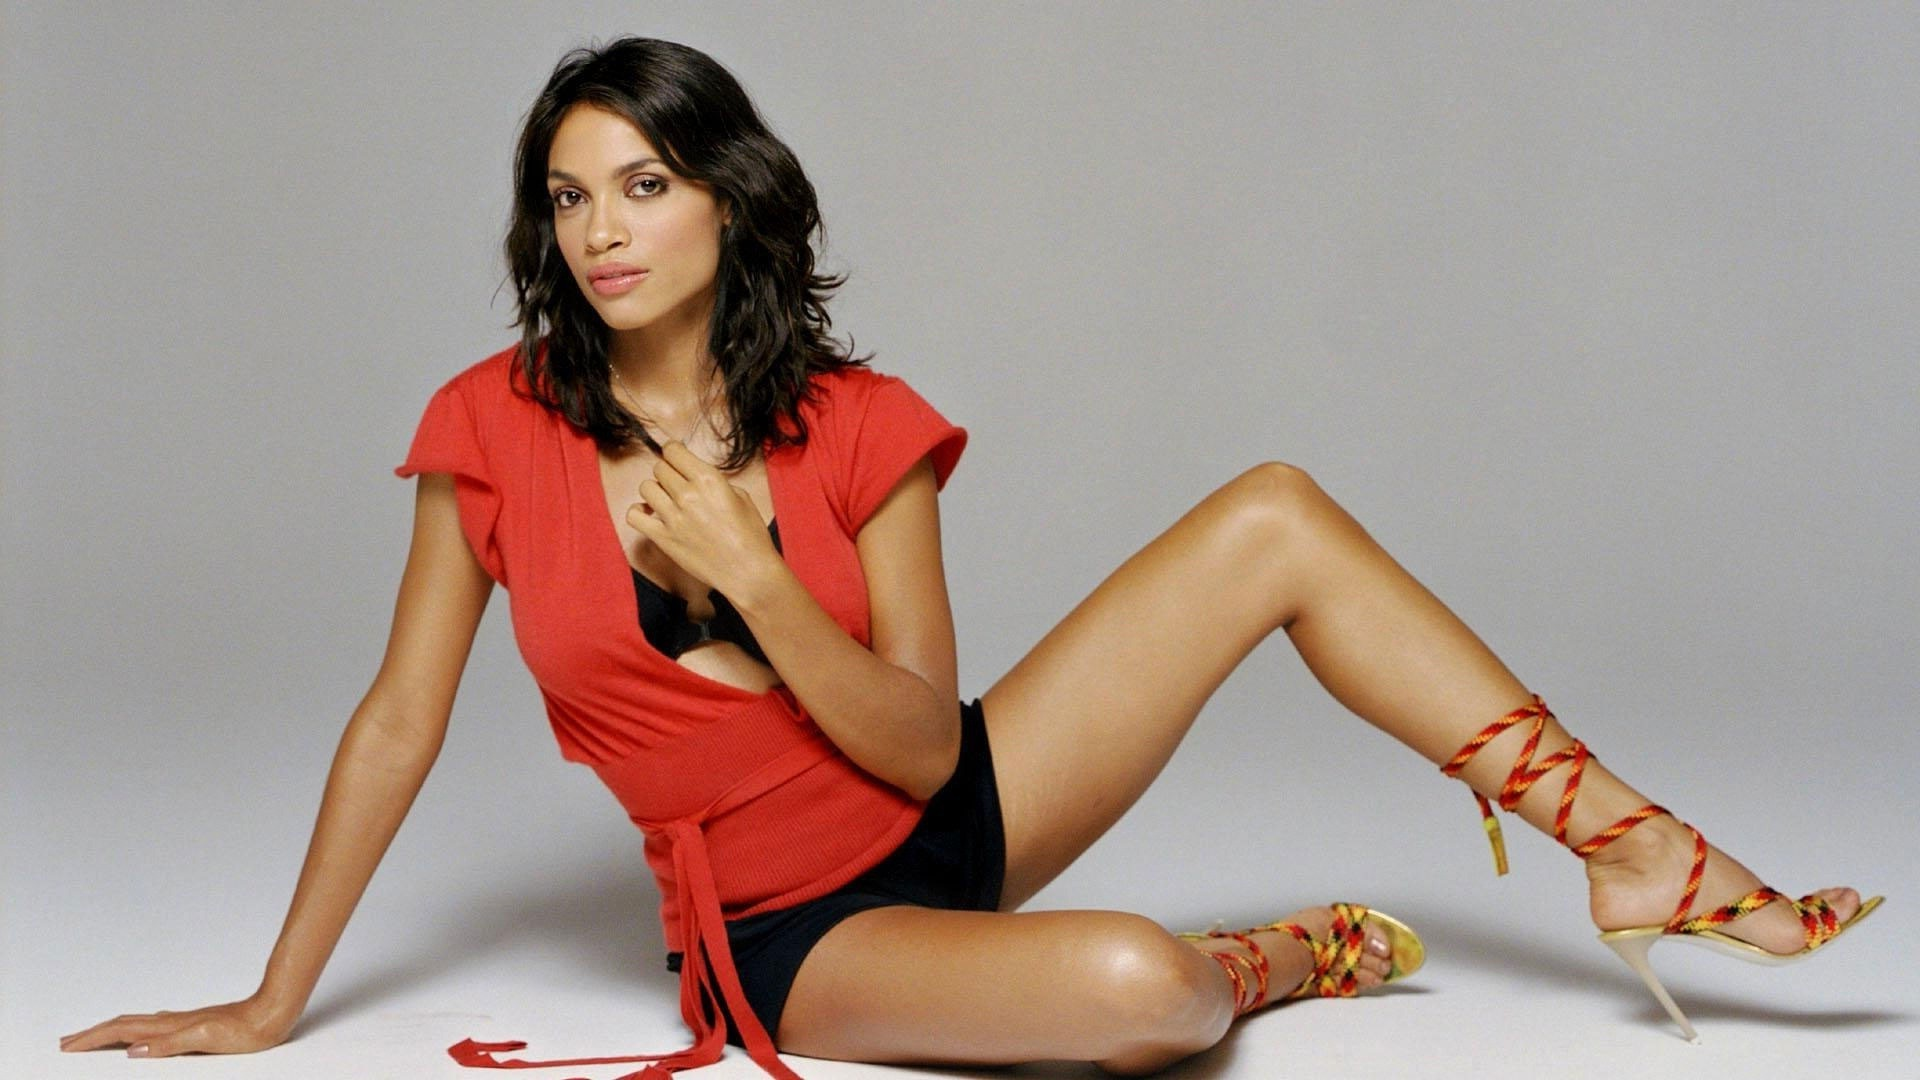 Rosario Dawson Wallpaper - Wallpaper, High Definition, High Quality ...